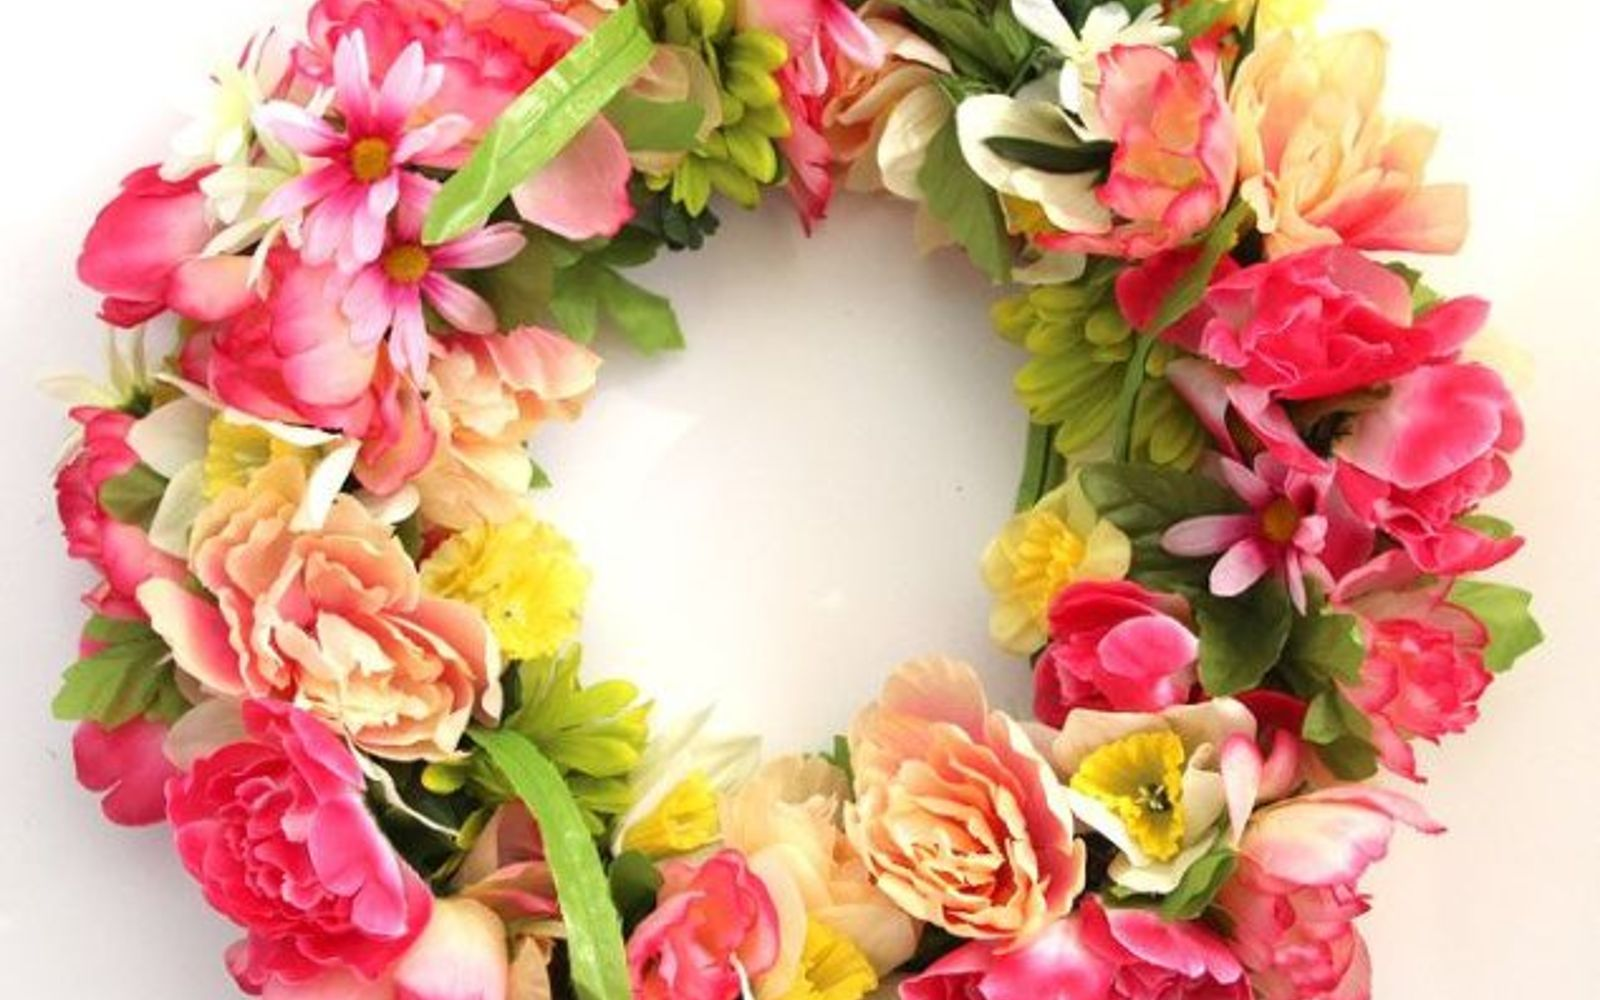 s 31 gorgeous spring wreaths that will make your neighbors smile, crafts, seasonal holiday decor, wreaths, Mix together Dollar Store flowers